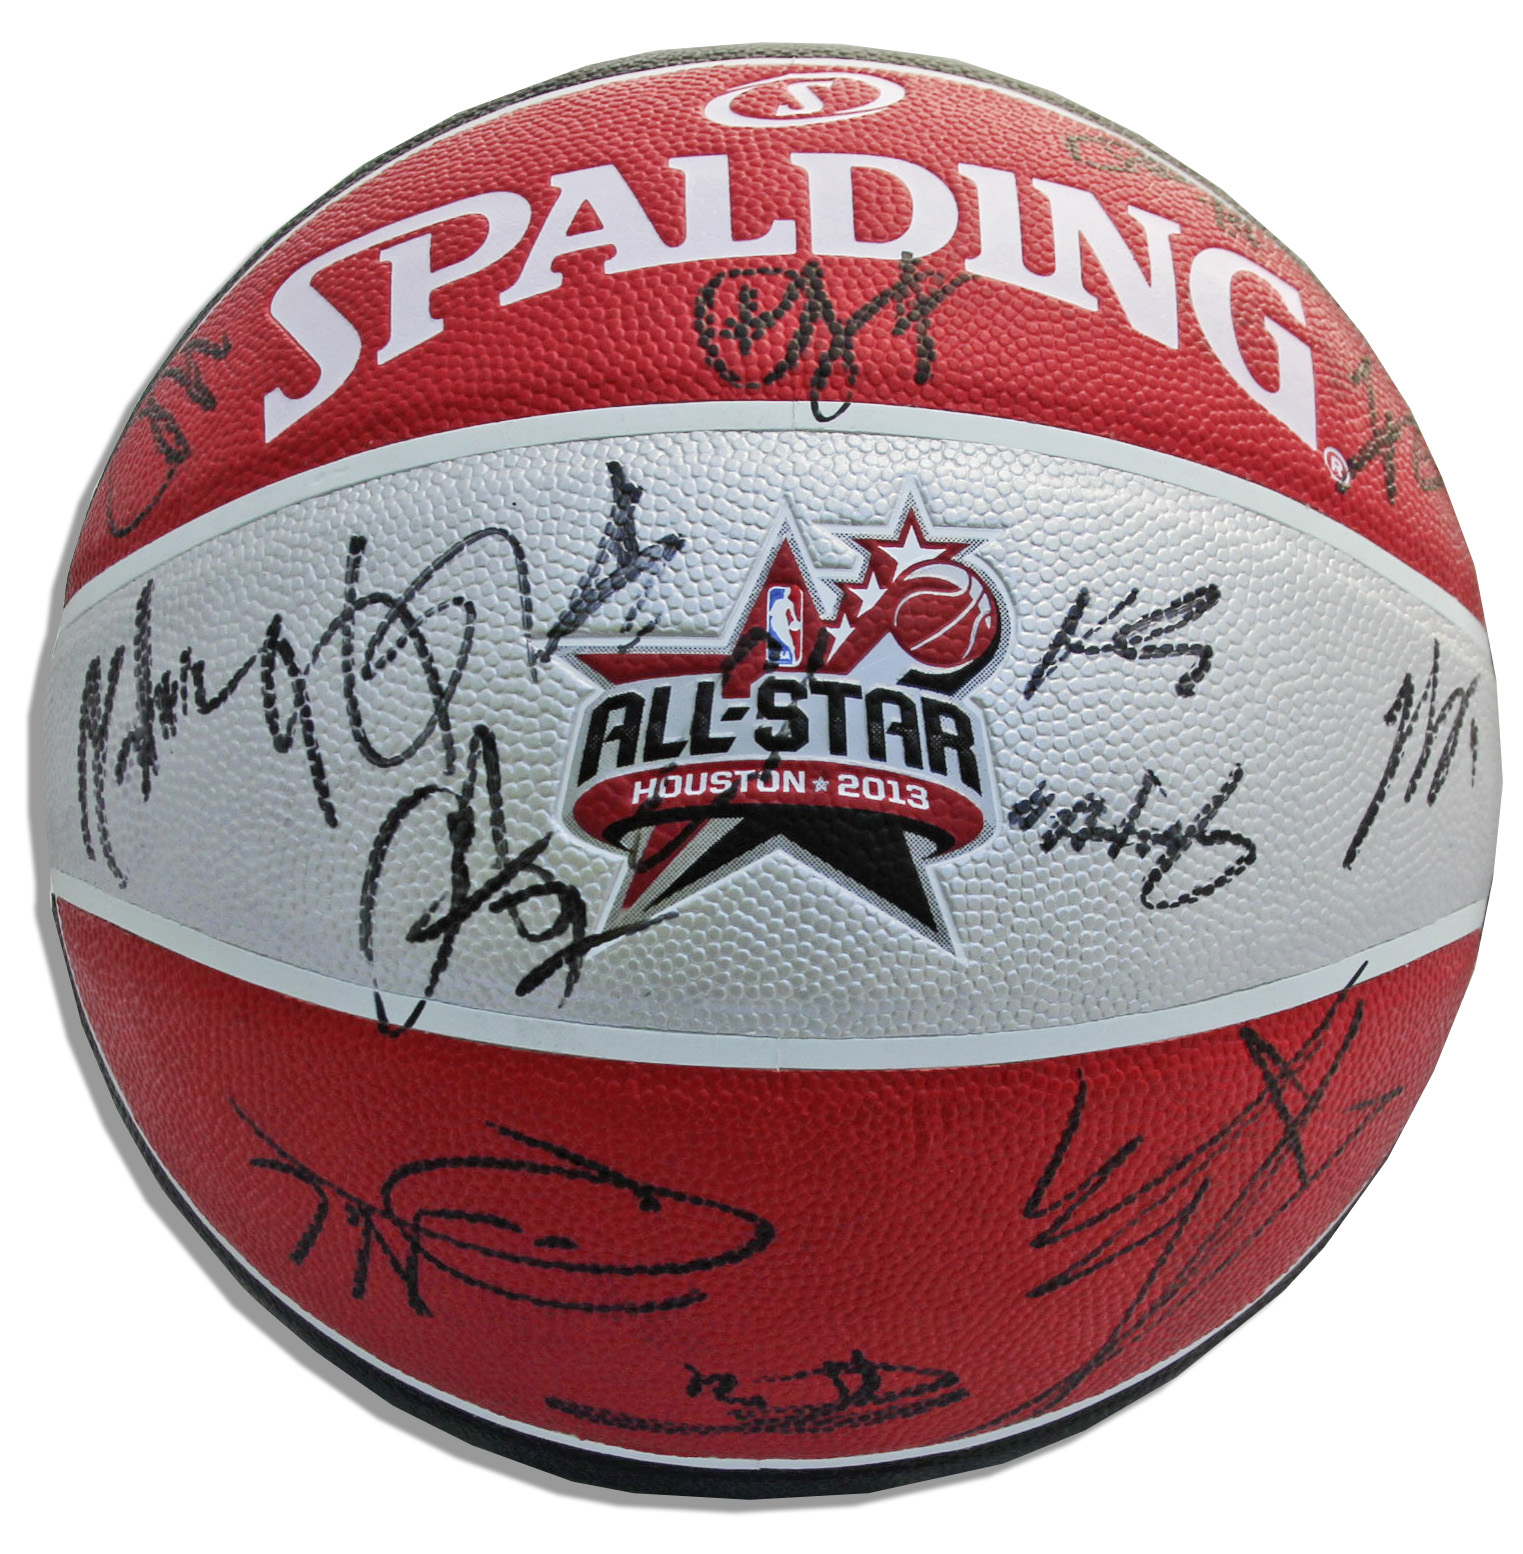 new style 9fffa 4c72c Lot Detail - NBA 2013 All-Star Basketball Signed by 24 ...